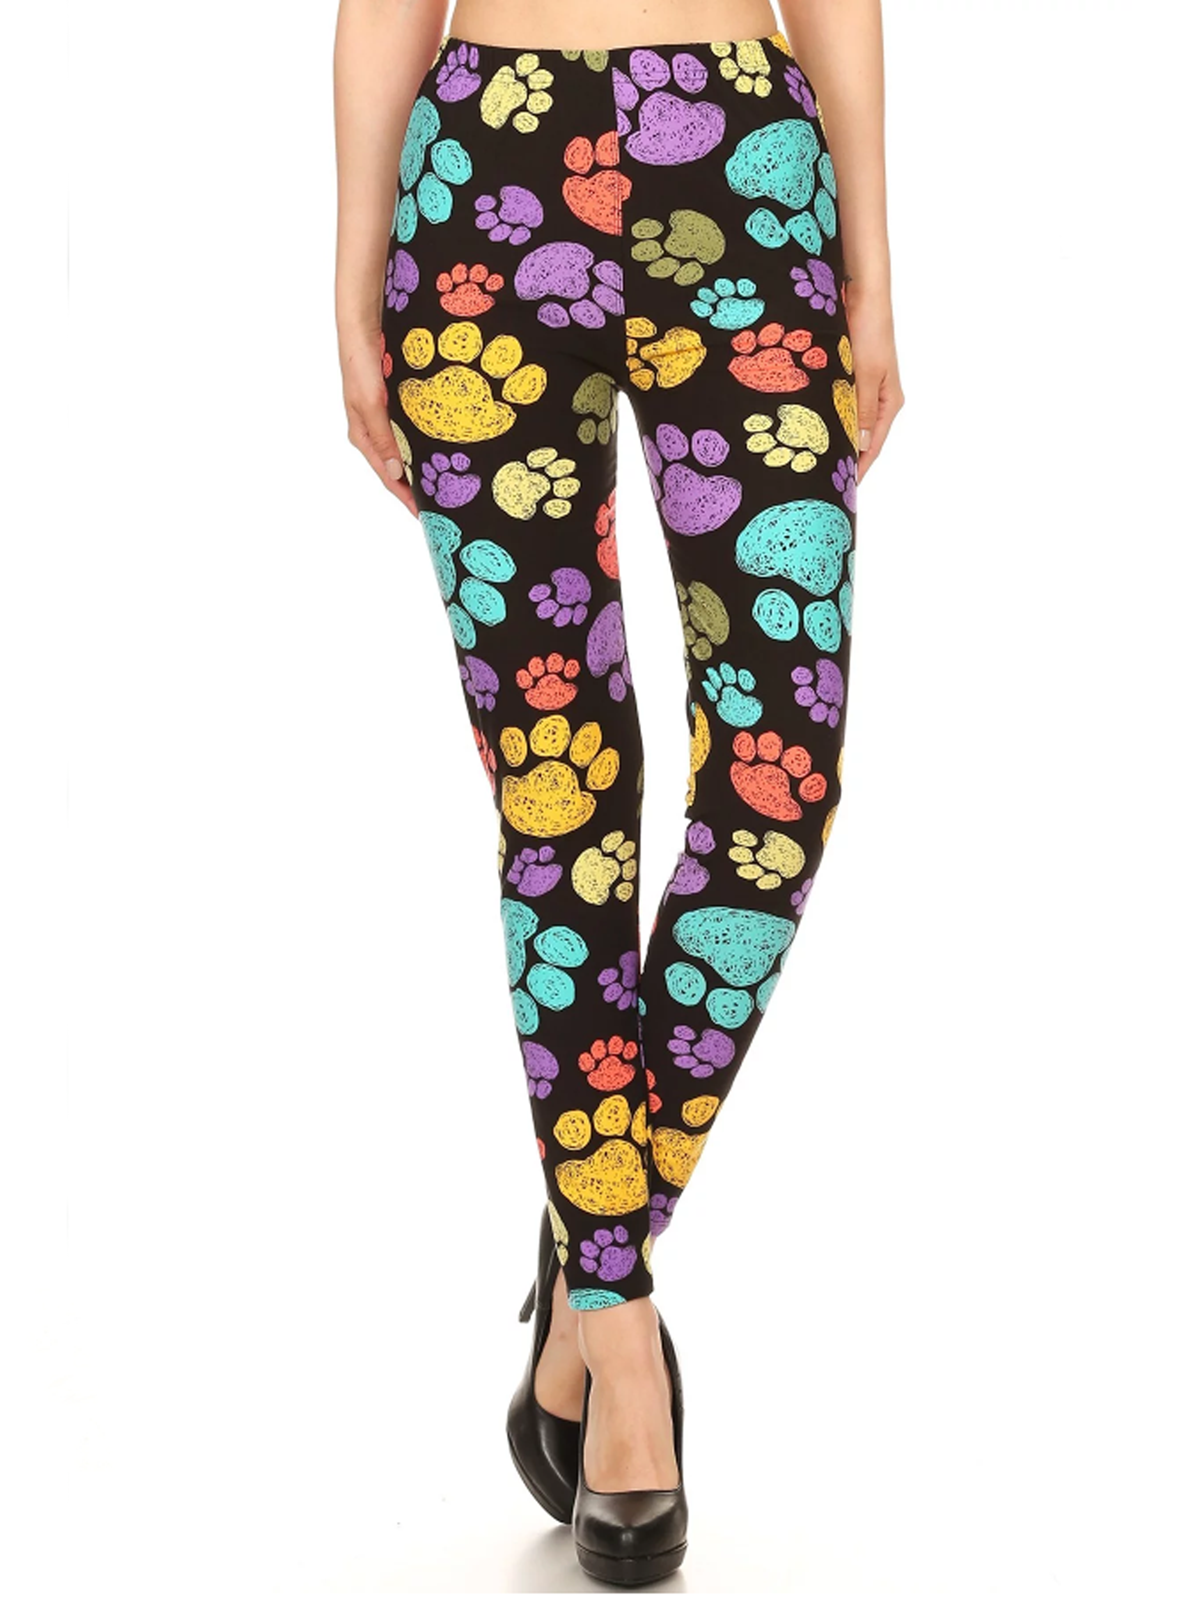 12bb27bc66a057 Featuring a lightweight and ridiculously soft material, it's so easy to  love wearing these cute leggings all day long! The pattern features ...